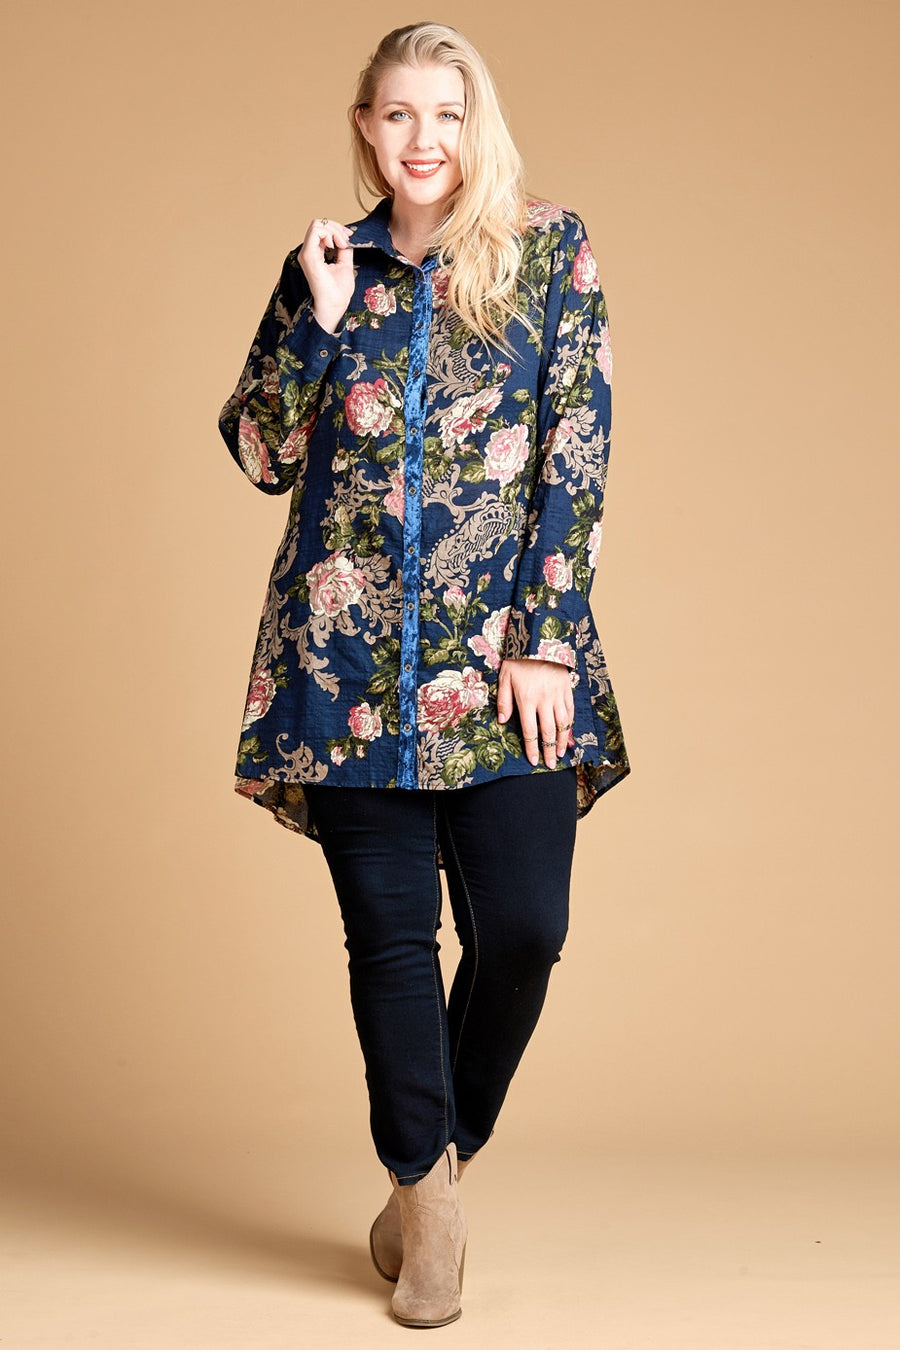 Floral Print-Block Button Down Shirt 00641